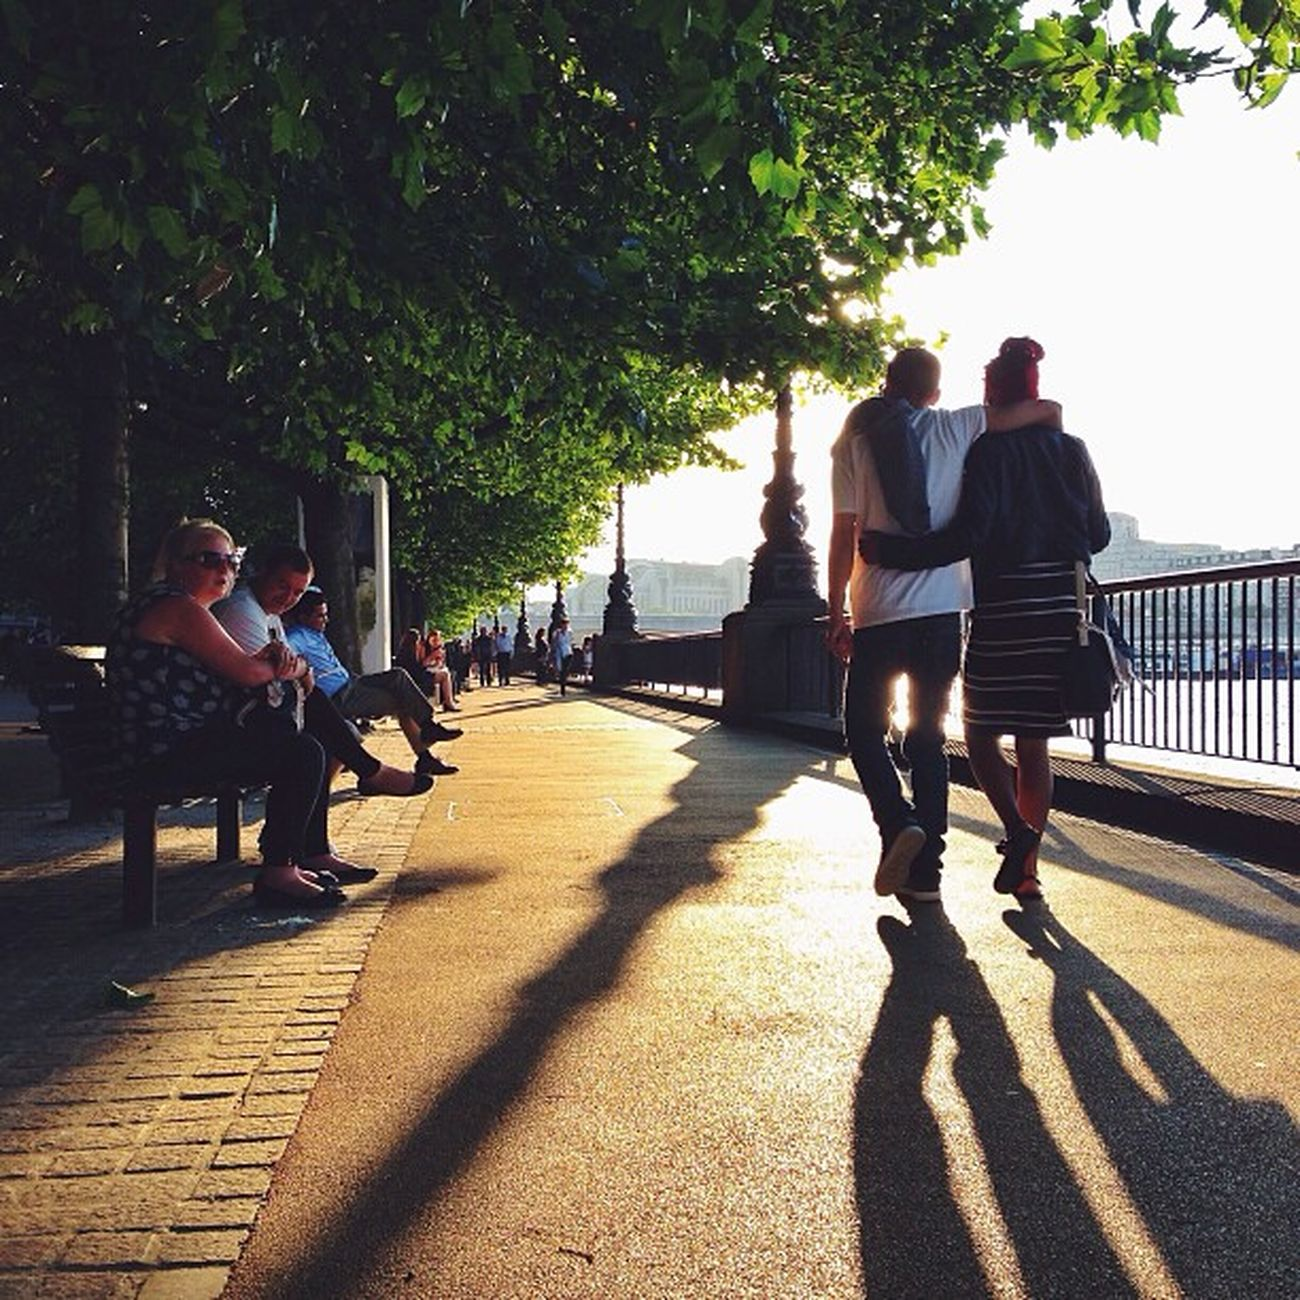 One of the last august days on southbank ?☀️?????☀️#alan_in_london #gf_uk #gang_family #igers_london #insta_london #london_only #thisislondon #from_city #ic_cities_london #ig_england #love_london #gi_uk #ig_london #londonpop #allshots_ #aauk #mashpics # Ig_london Aauk Capture_today Gang_family Loveyoursummer Londonpop Mashpics Allshots_ Top_masters London_only From_city Gf_uk Pro_shooters Alan_in_london Insta_london Whpstrideby Thisislondon Gi_uk Igers_london Ig_england Love_london Ic_cities_london